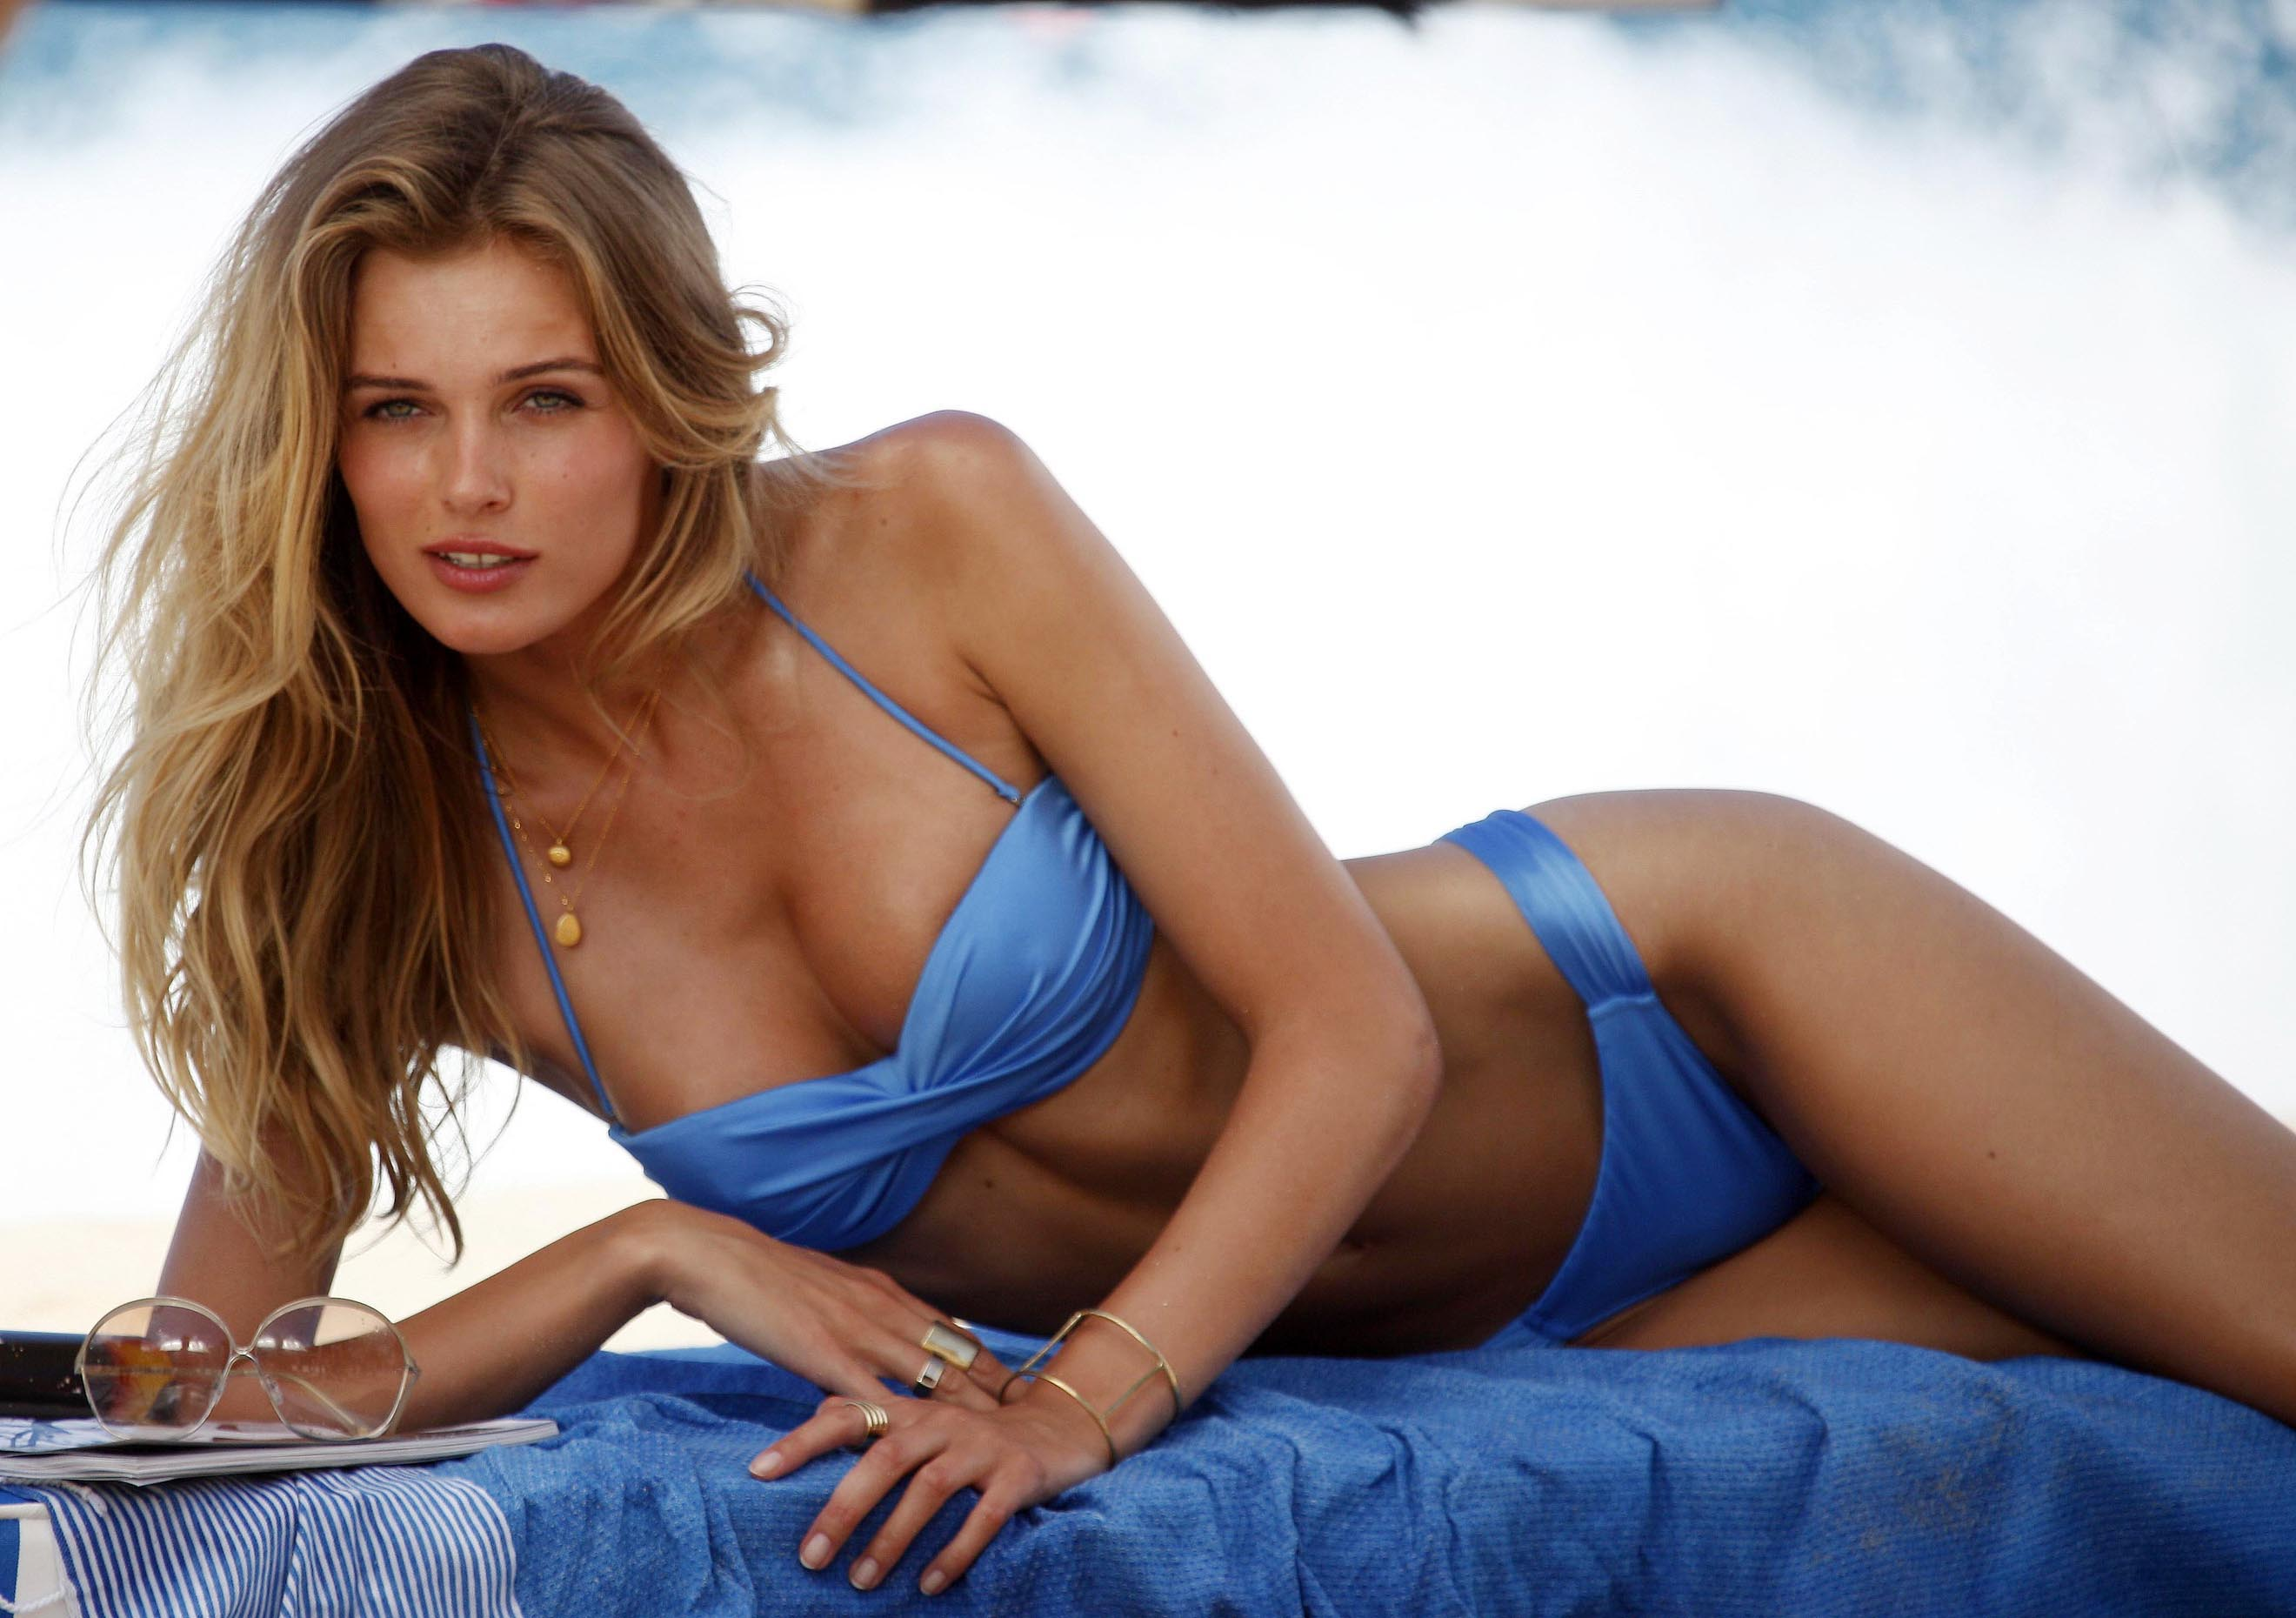 77121_Edita_Vilkeviciute_Bikini_Photoshoot_for_Victorias_Secret_in_St_Barts_January_27_2013_041_122_498lo